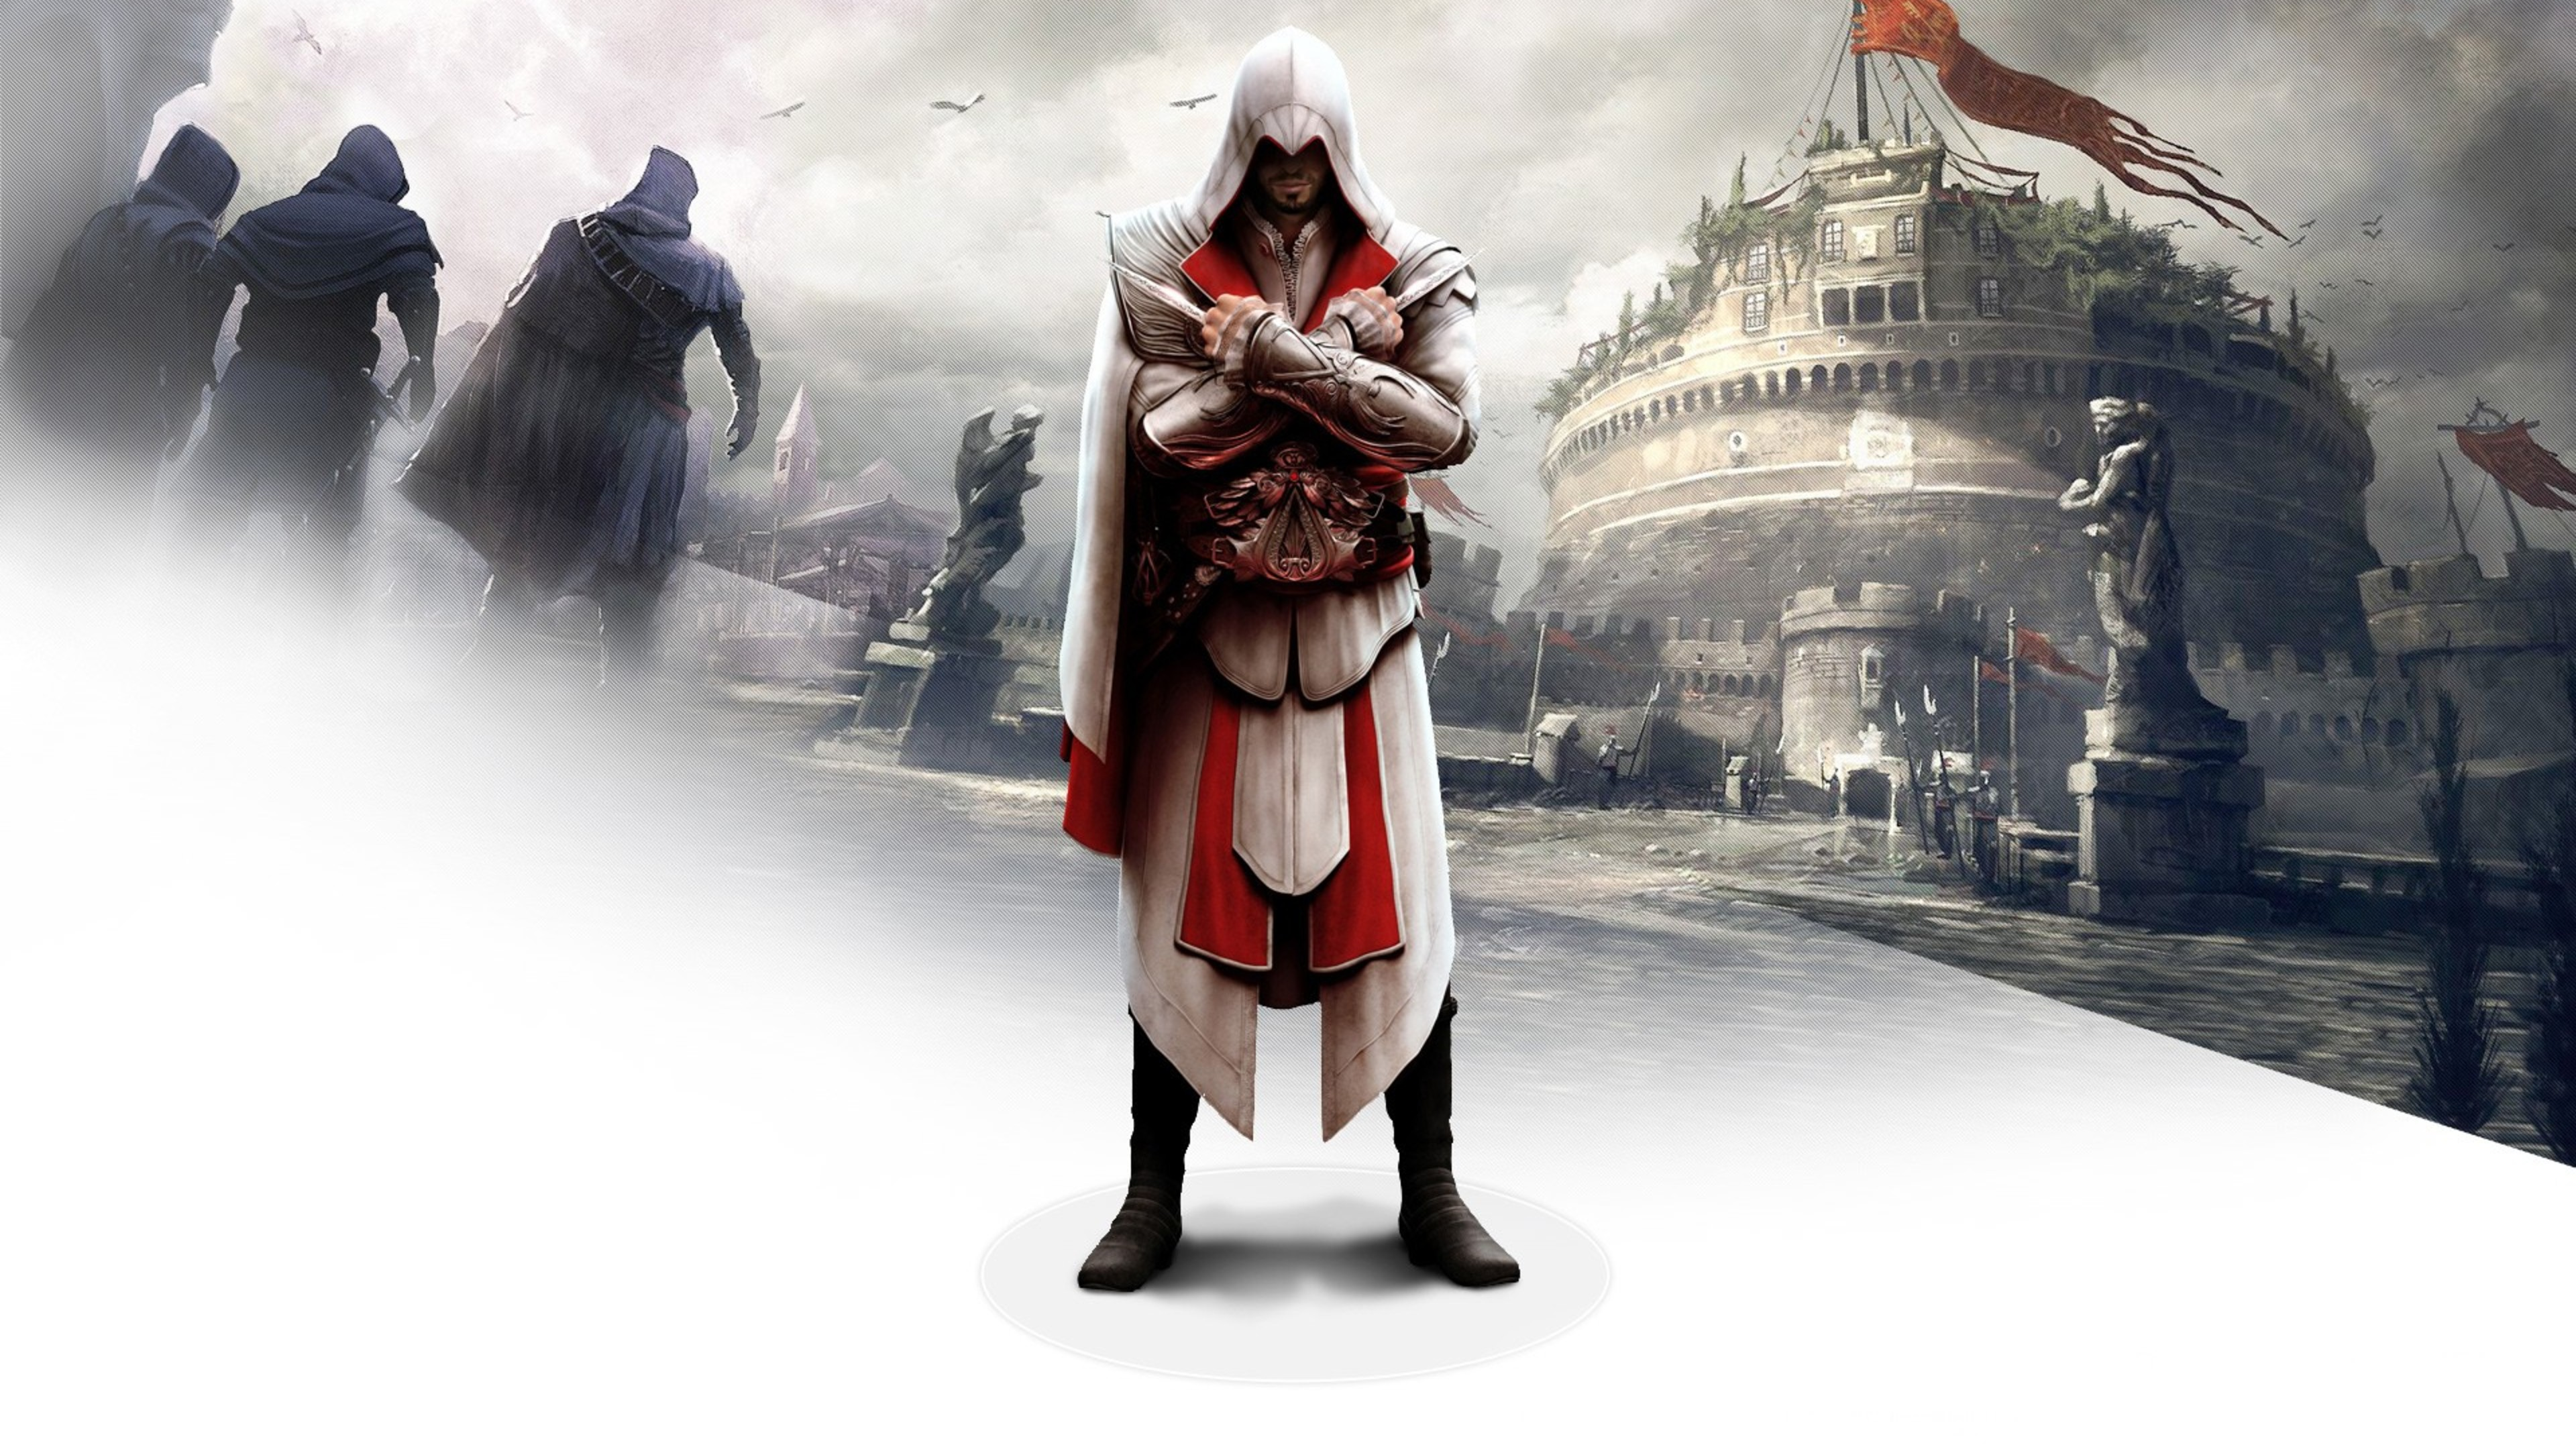 1366x768 Ezio In Assassins Creed Brotherhood 1366x768 Resolution